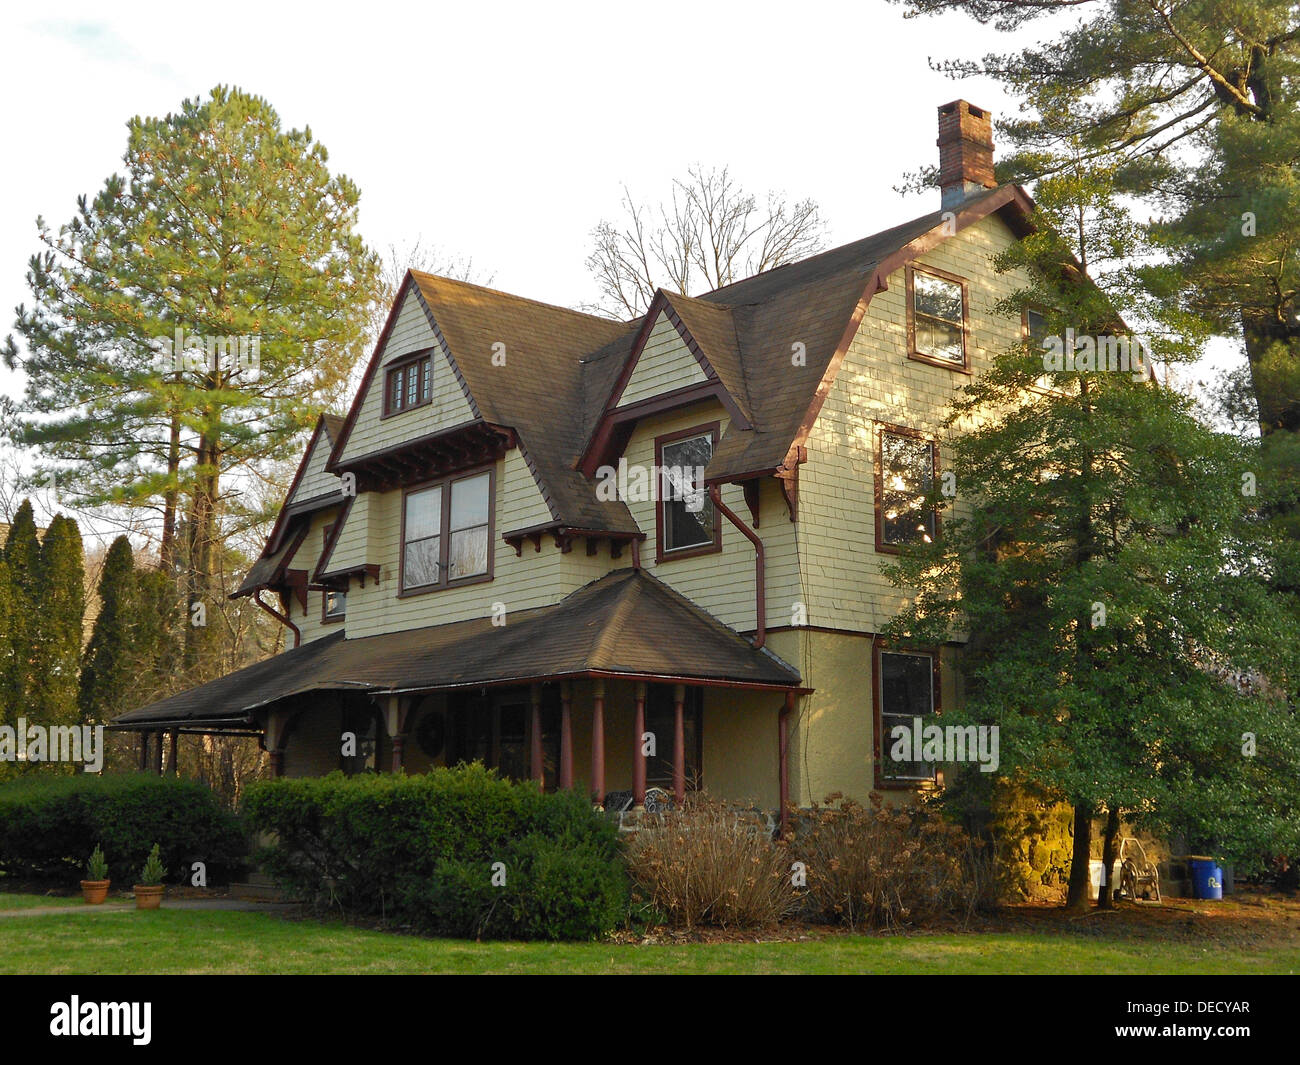 402 Midland Avenue, Wayne, Pennsylvania house designed by Price Brothers or Wil Price, plan 1890-D, according to NRHP nomination. At least 5 other versions of this house in the immediate neighborhood. Part of the South Wayne Historic District. - Stock Image